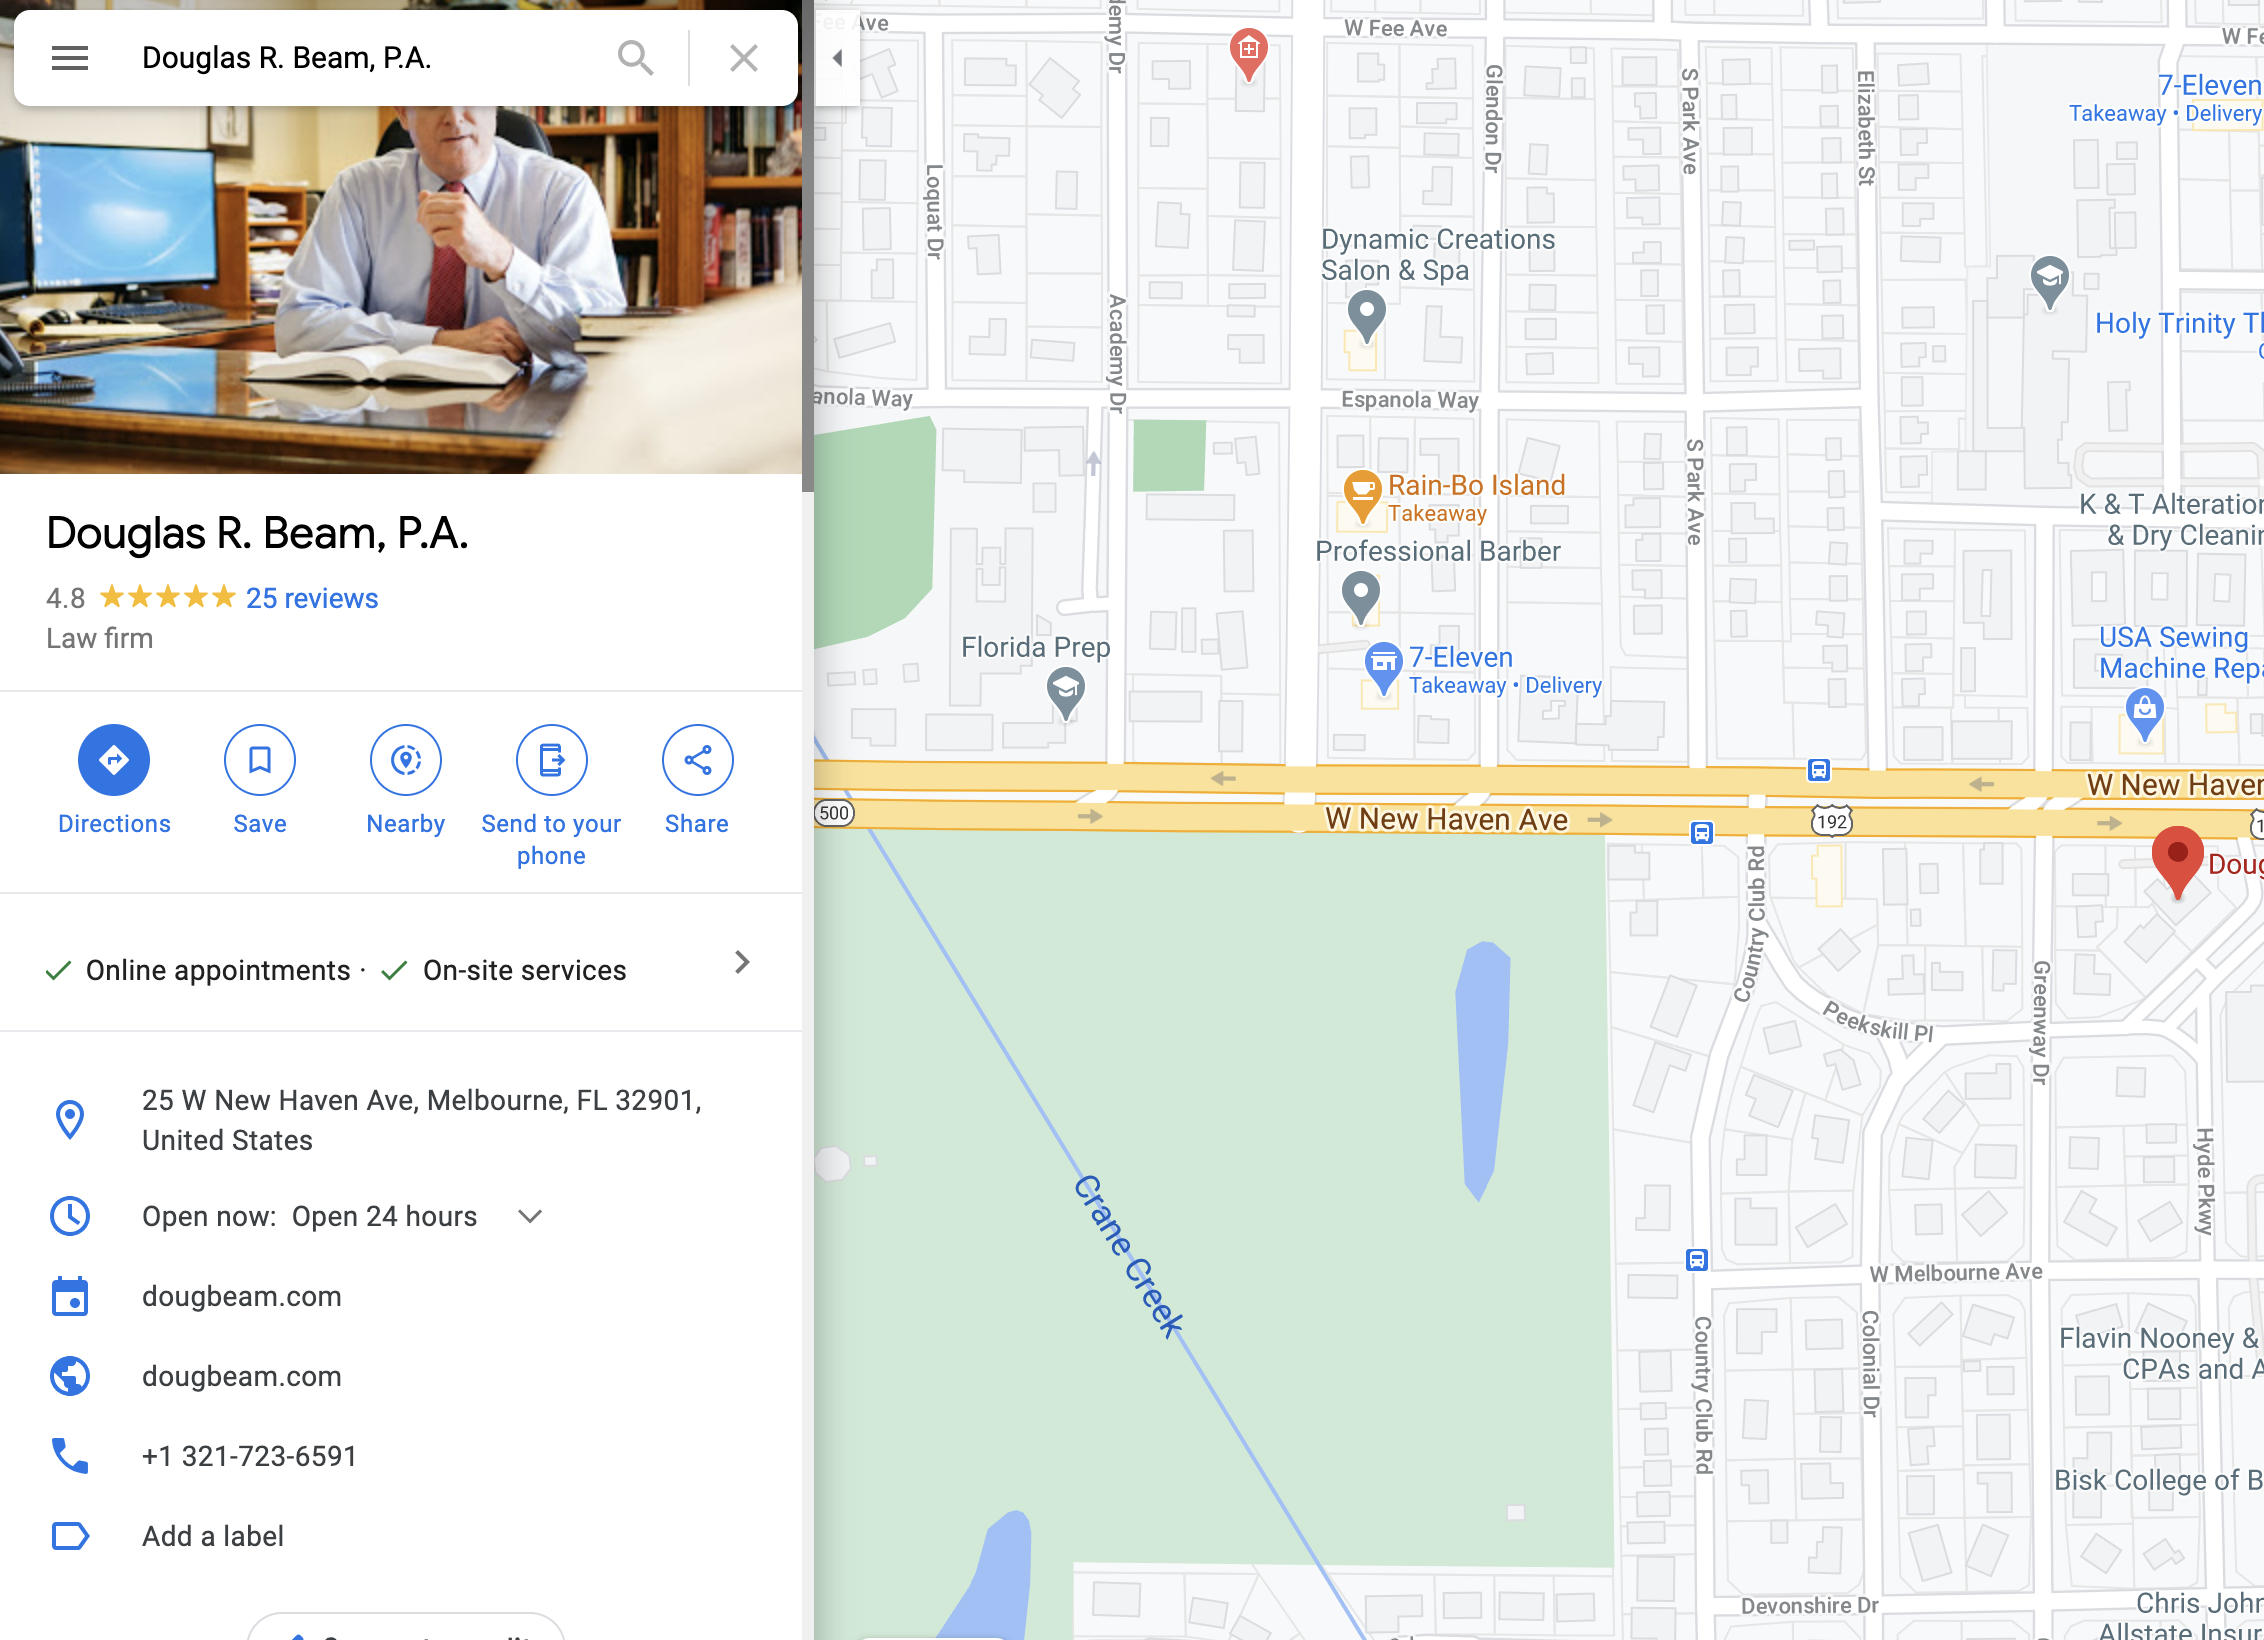 An image of Douglas R. Beam's Law Firm on Google My Business